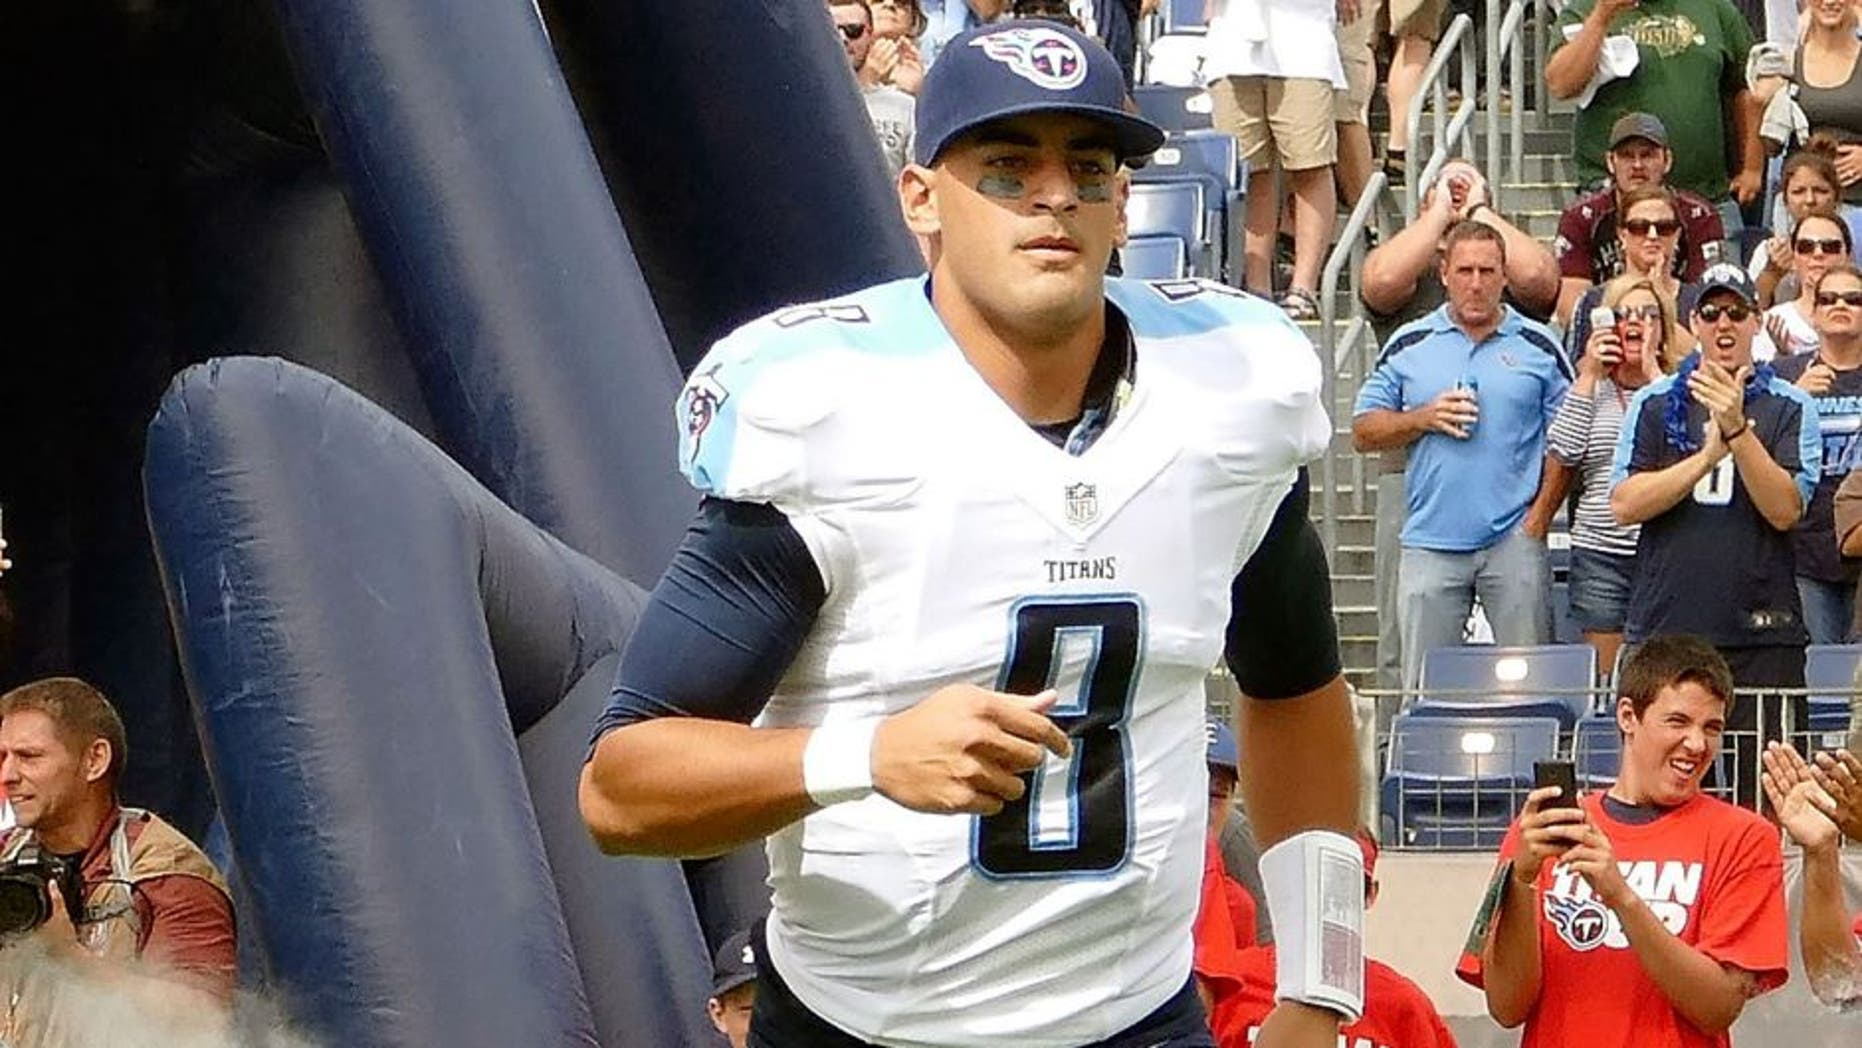 NASHVILLE, TN - SEPTEMBER 27: Marcus Mariota #8 of the Tennessee Titans runs onto the field prior to a game against the Indianapolis Colts at Nissan Stadium on September 27, 2015 in Nashville, Tennessee. (Photo by Frederick Breedon/Getty Images)